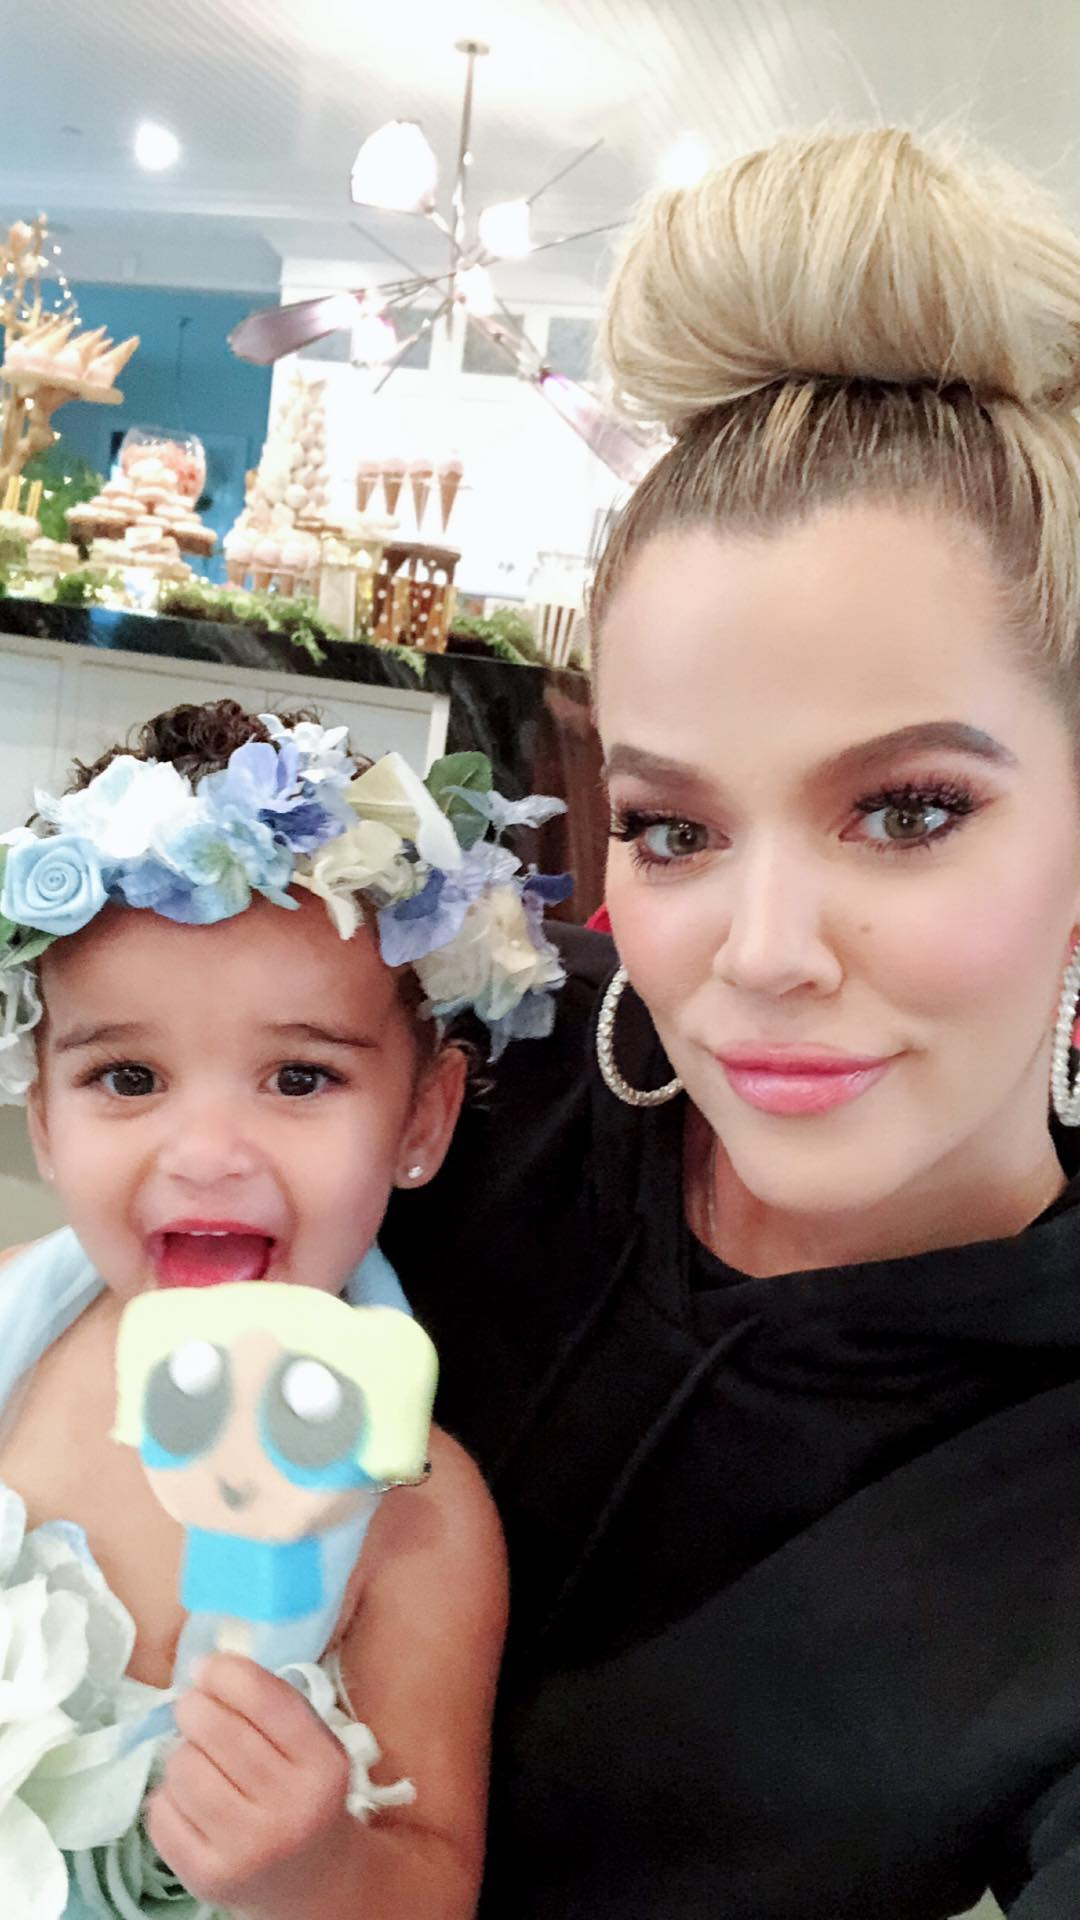 Kardashian Sisters Celebrate Dream's 2nd Birthday with Fairy-Themed Party